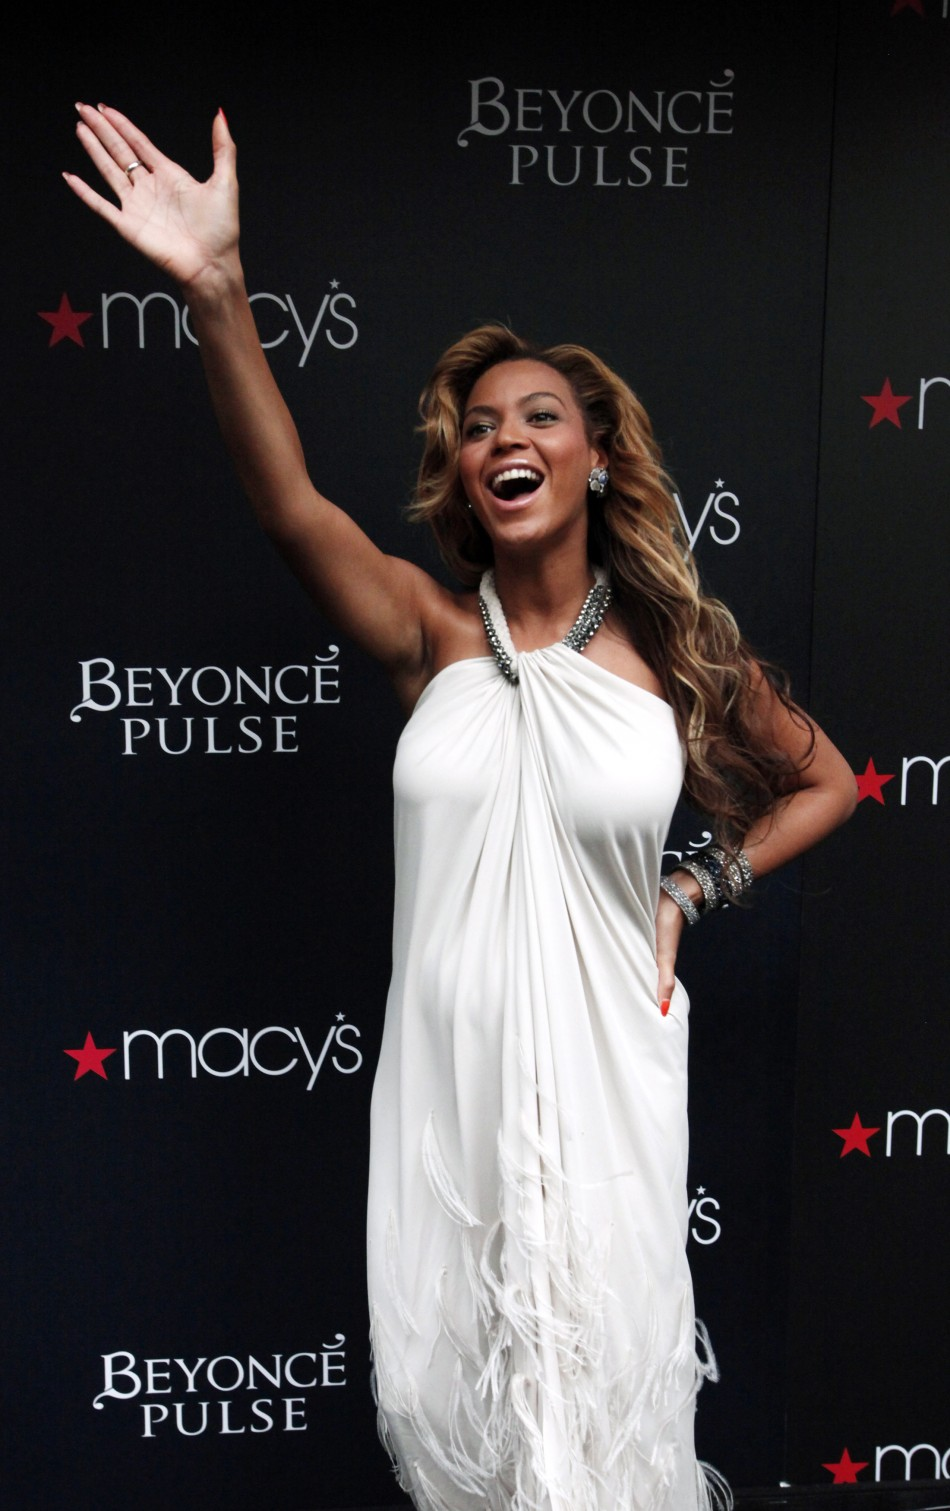 Beyoncé offered $500m to become judge on X Factor USA